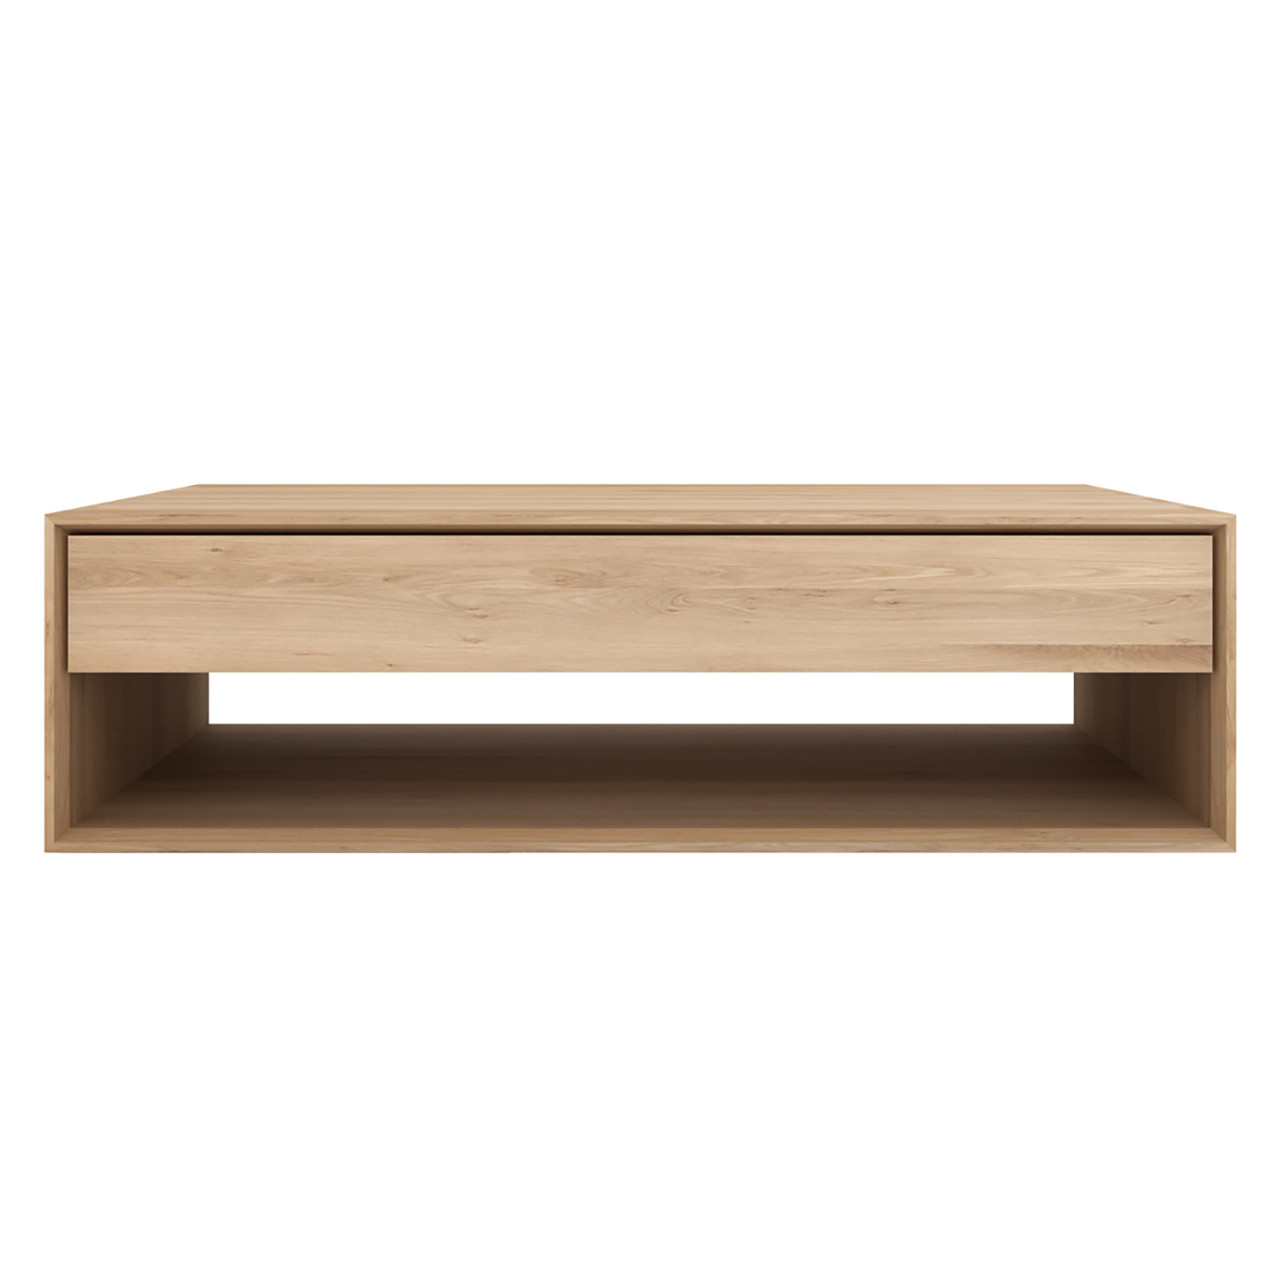 Light Oak Nordic Coffee Table with Storage